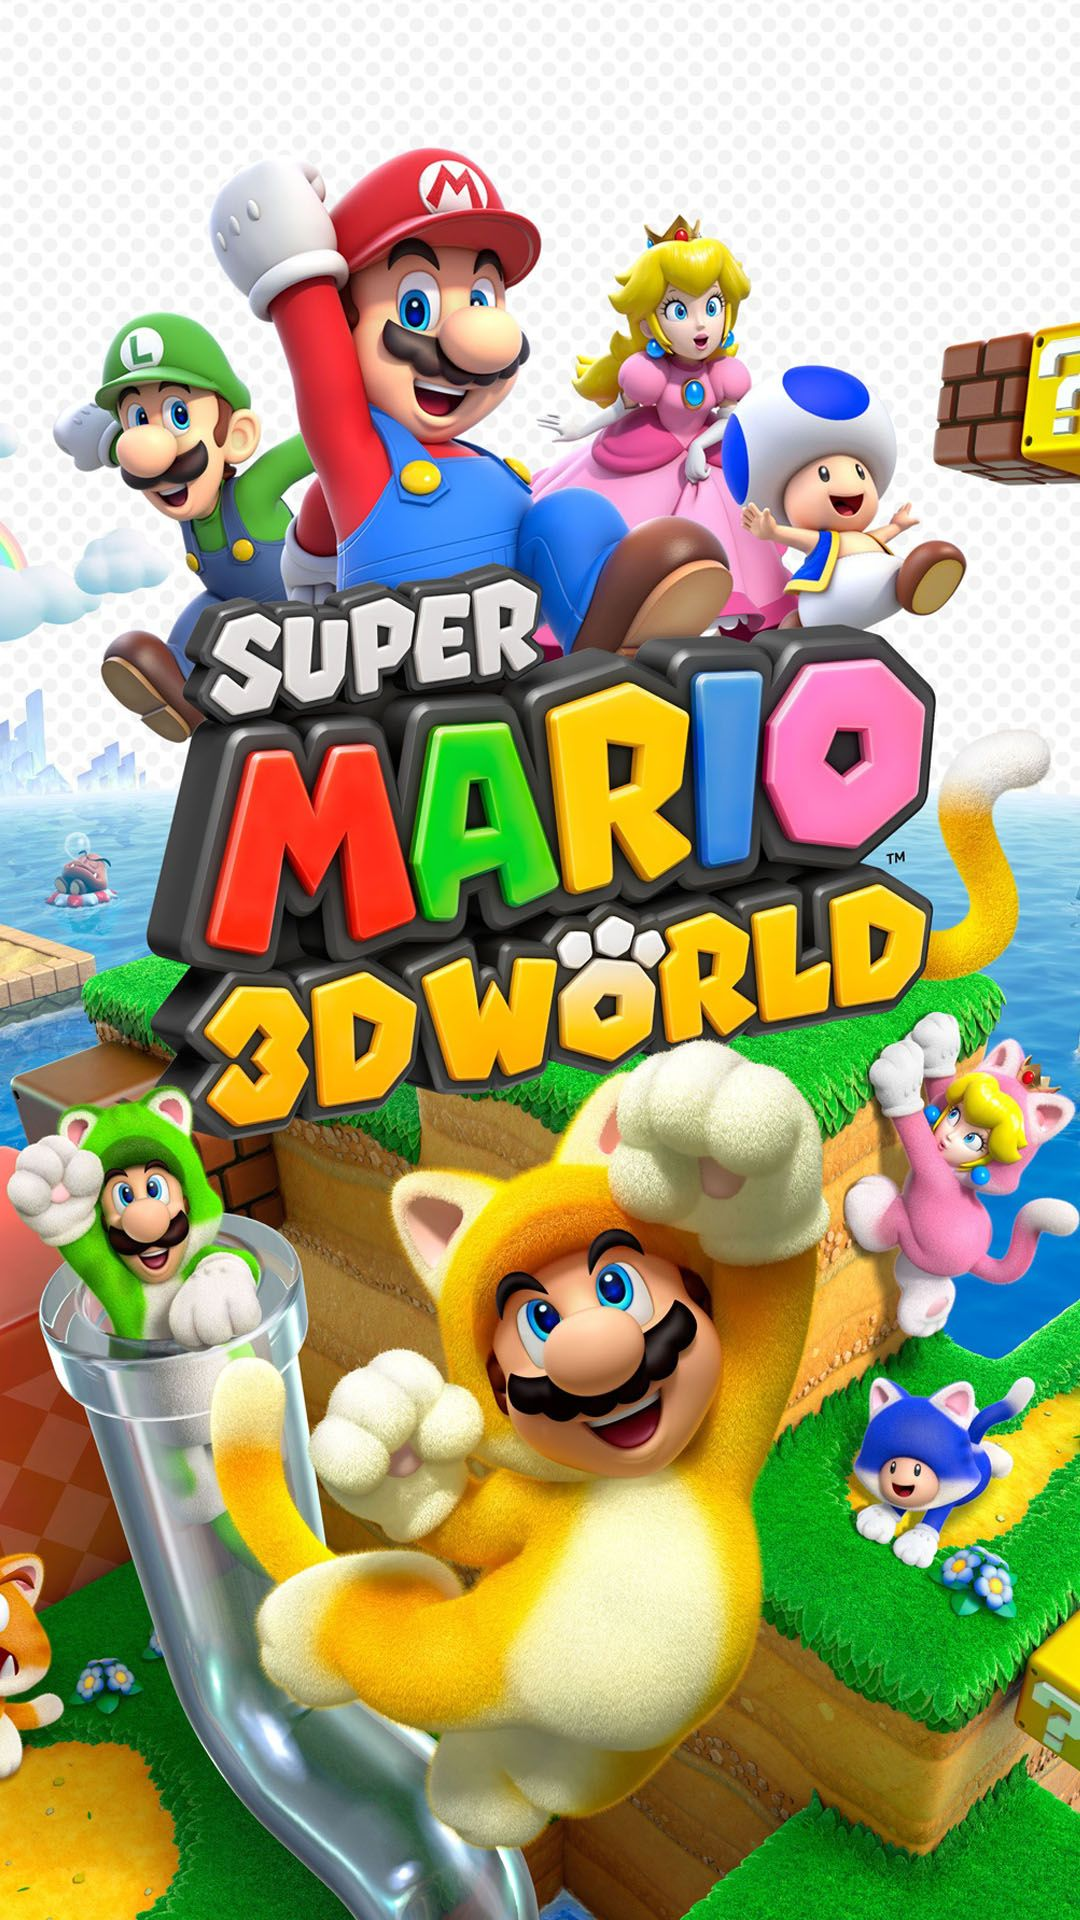 Hd Super Mario 3d World Mobile Wallpapers 1080x1920JPEG Image 1080 X 1920 Pixels